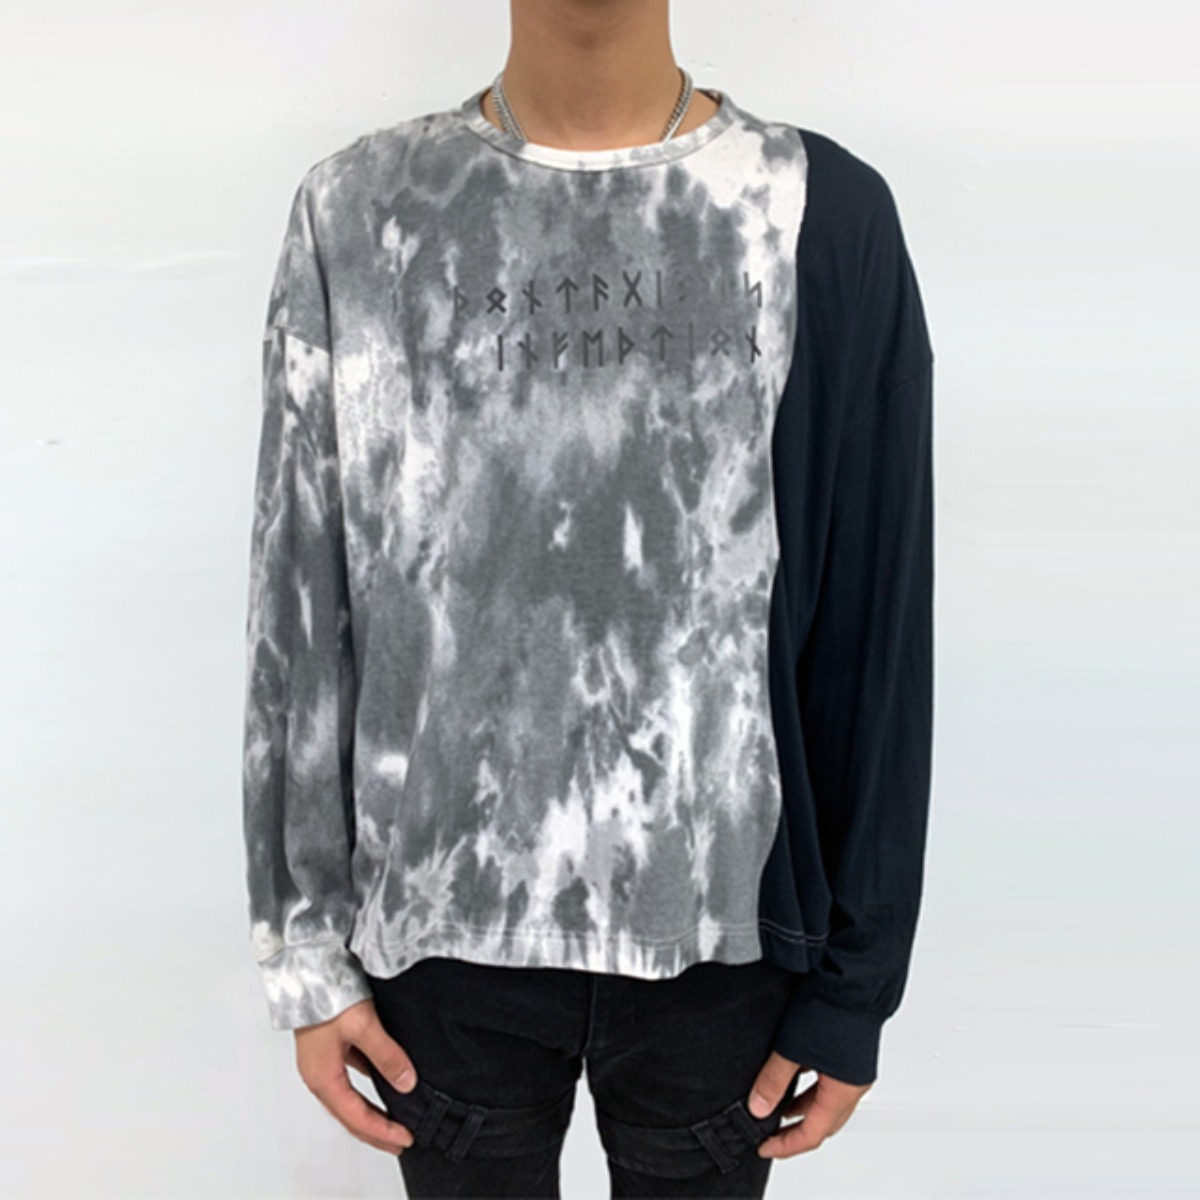 CONTAGIOUS INFECTION TIE DYE LAYERED SWEATSHIRTS (DZFW19_TP05)